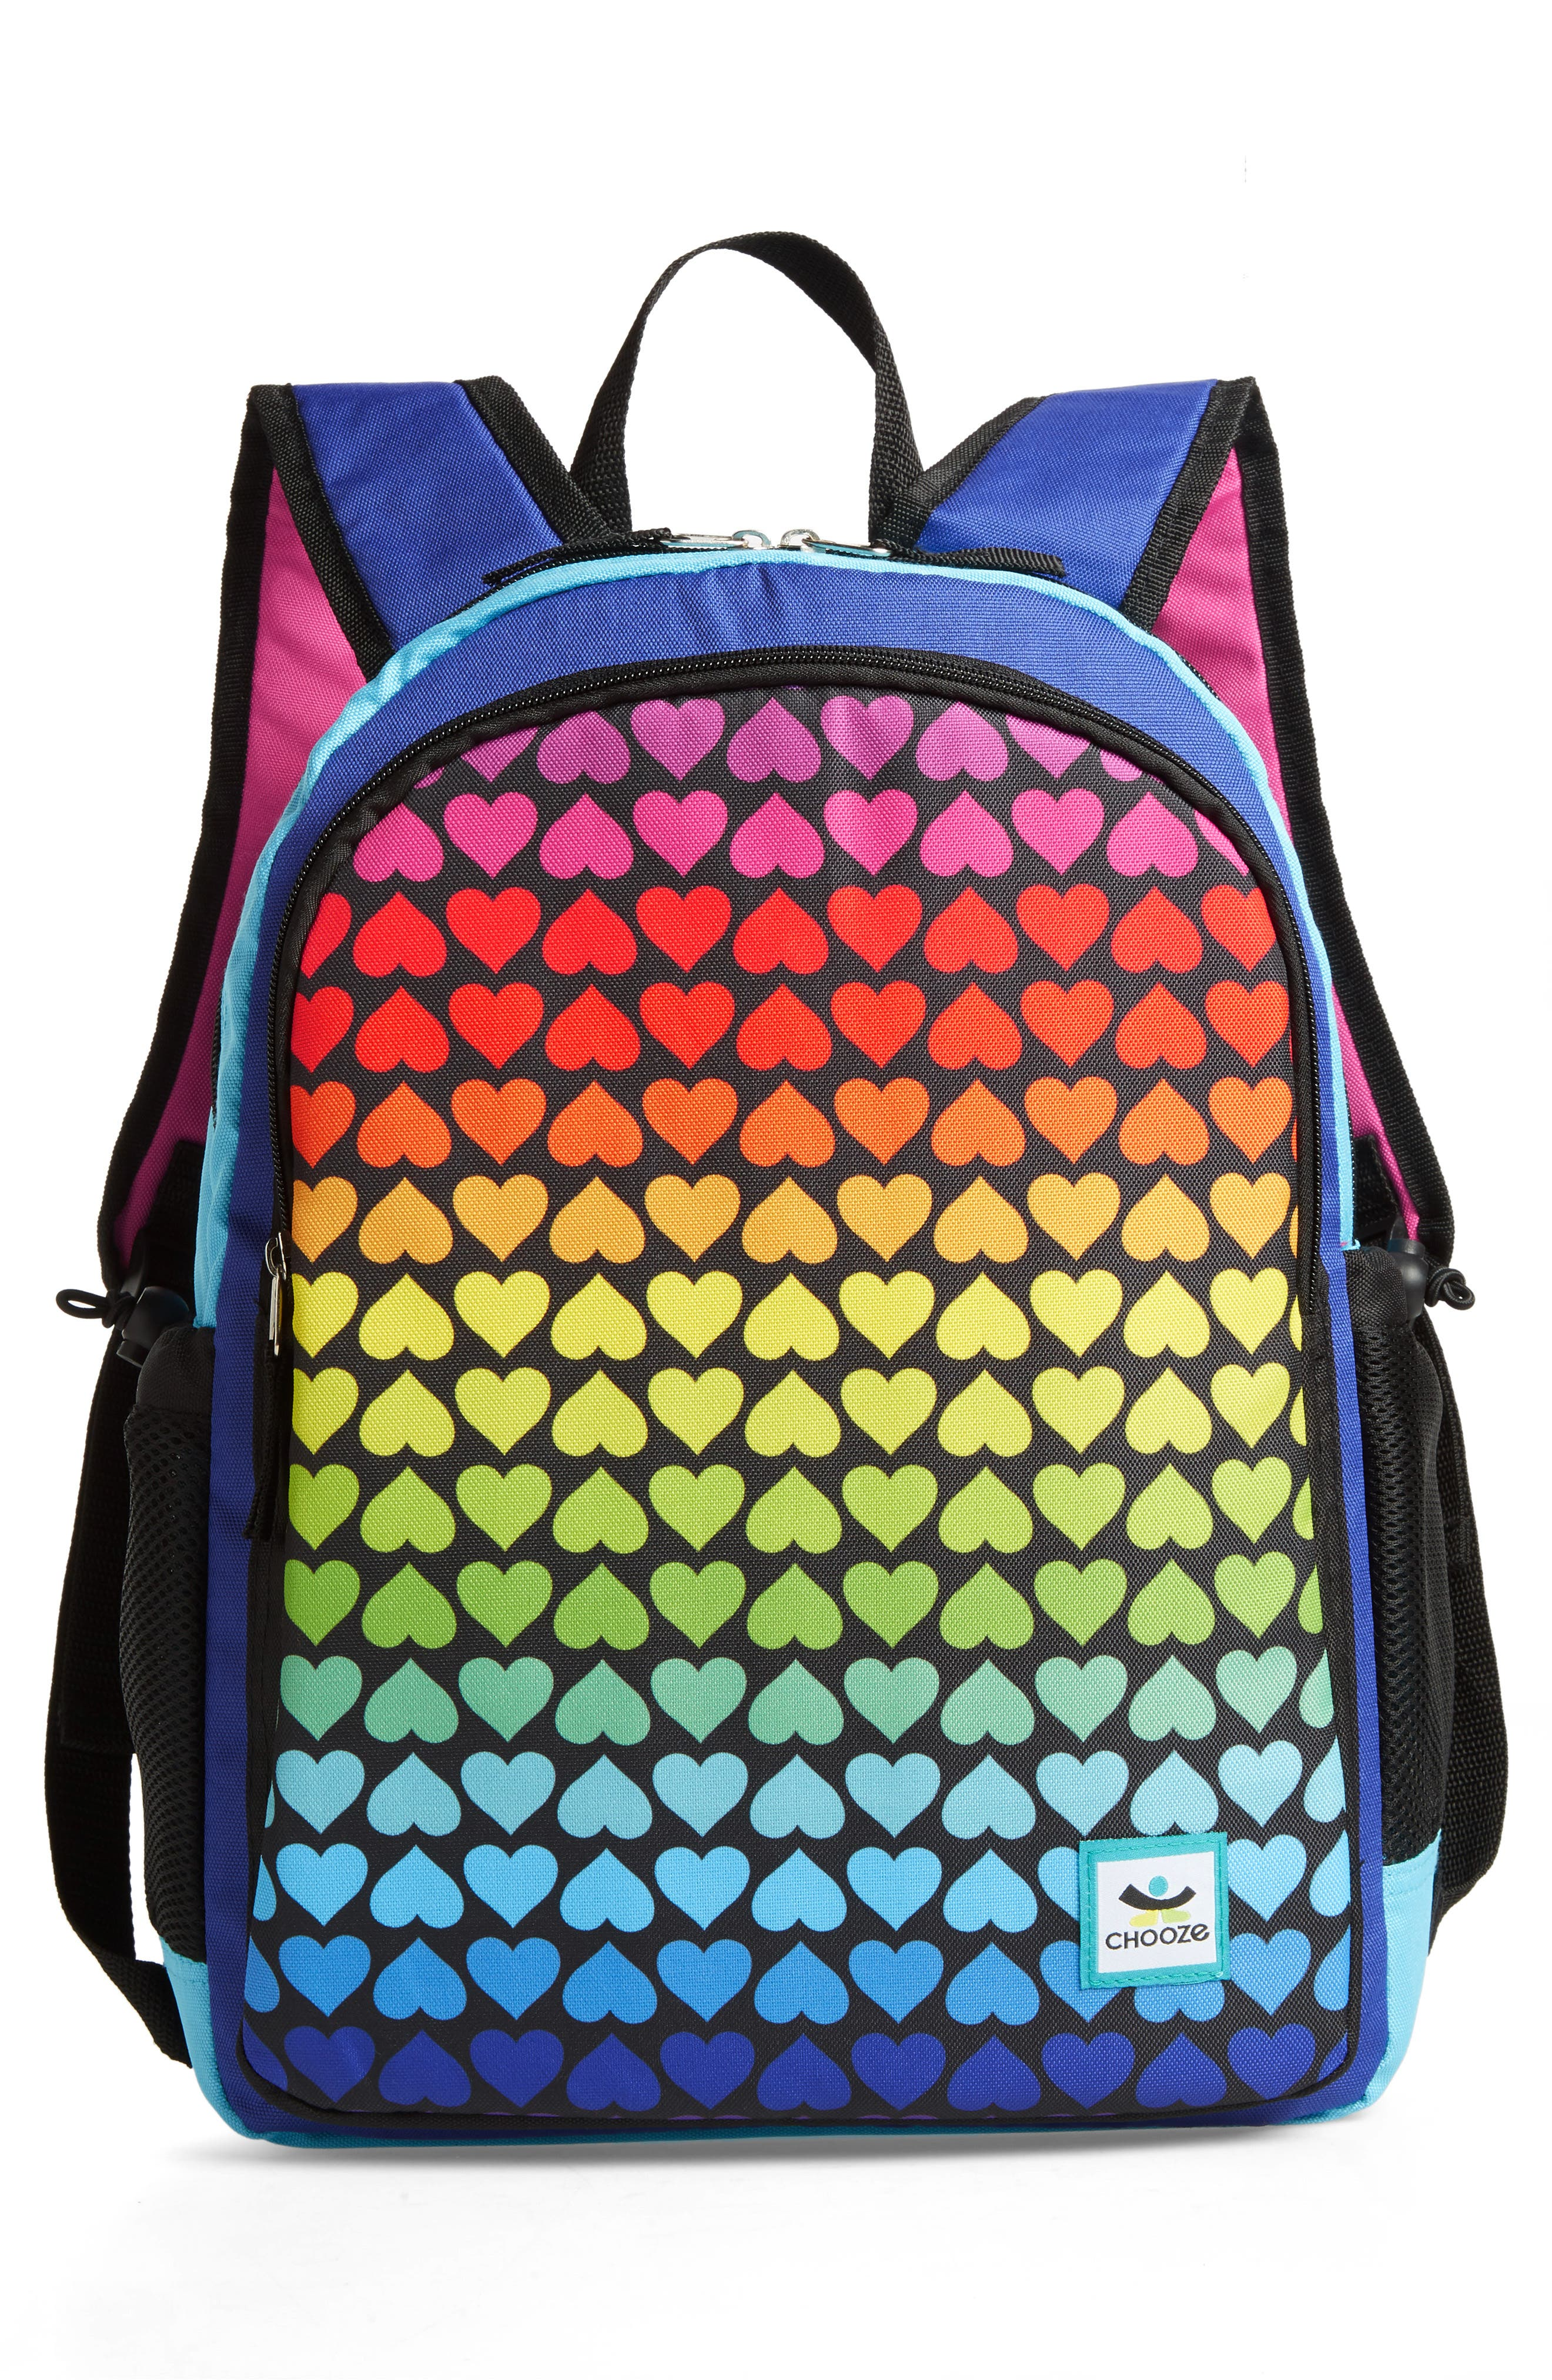 Hue Rainbow Reversible Backpack,                             Alternate thumbnail 2, color,                             001